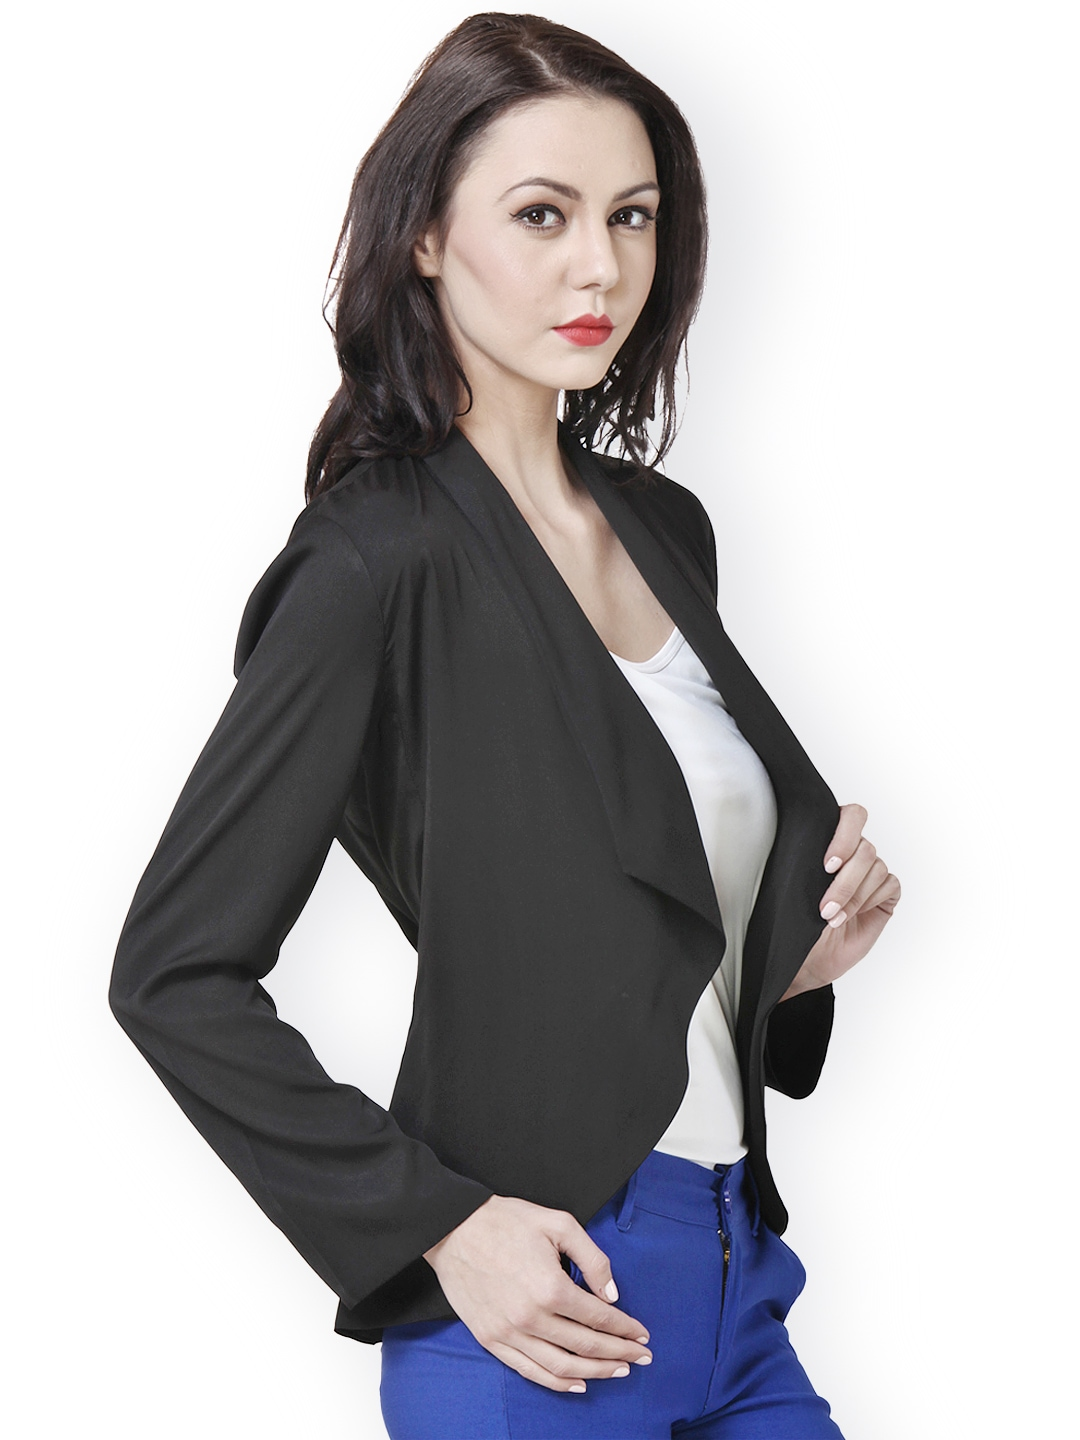 The boyfriend blazer, for example, is a long blazer that is intentionally oversized, akin to a man's fit. The jersey blazer is another variation with more slack in the fitting. A tweed blazer is a classic choice for a truly up-town feel.